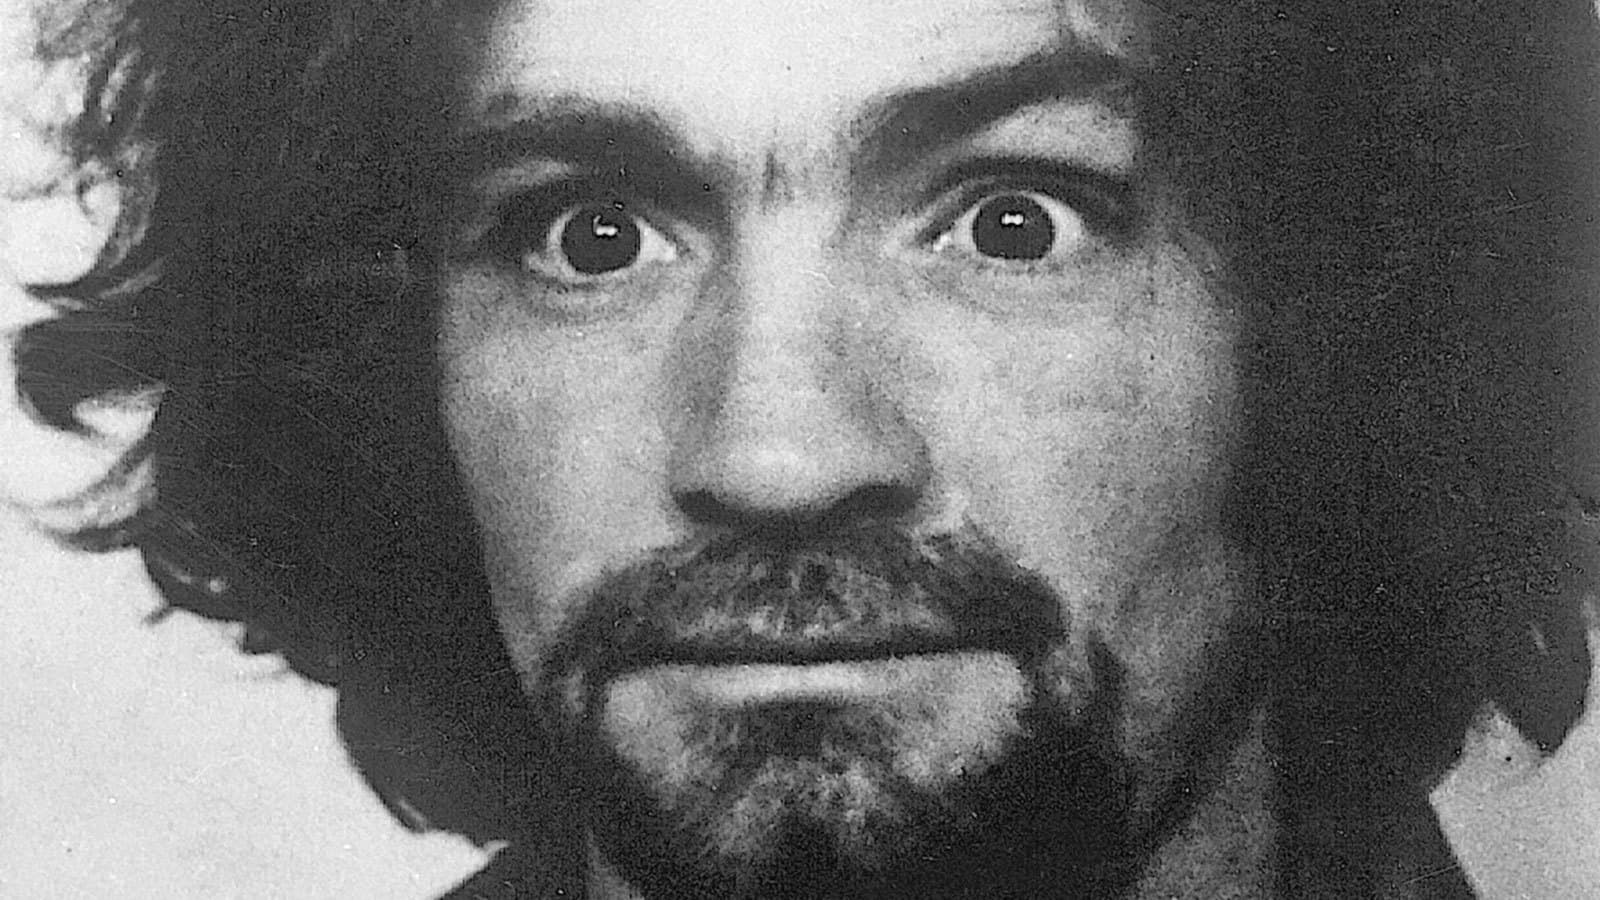 Facts about Charles Manson